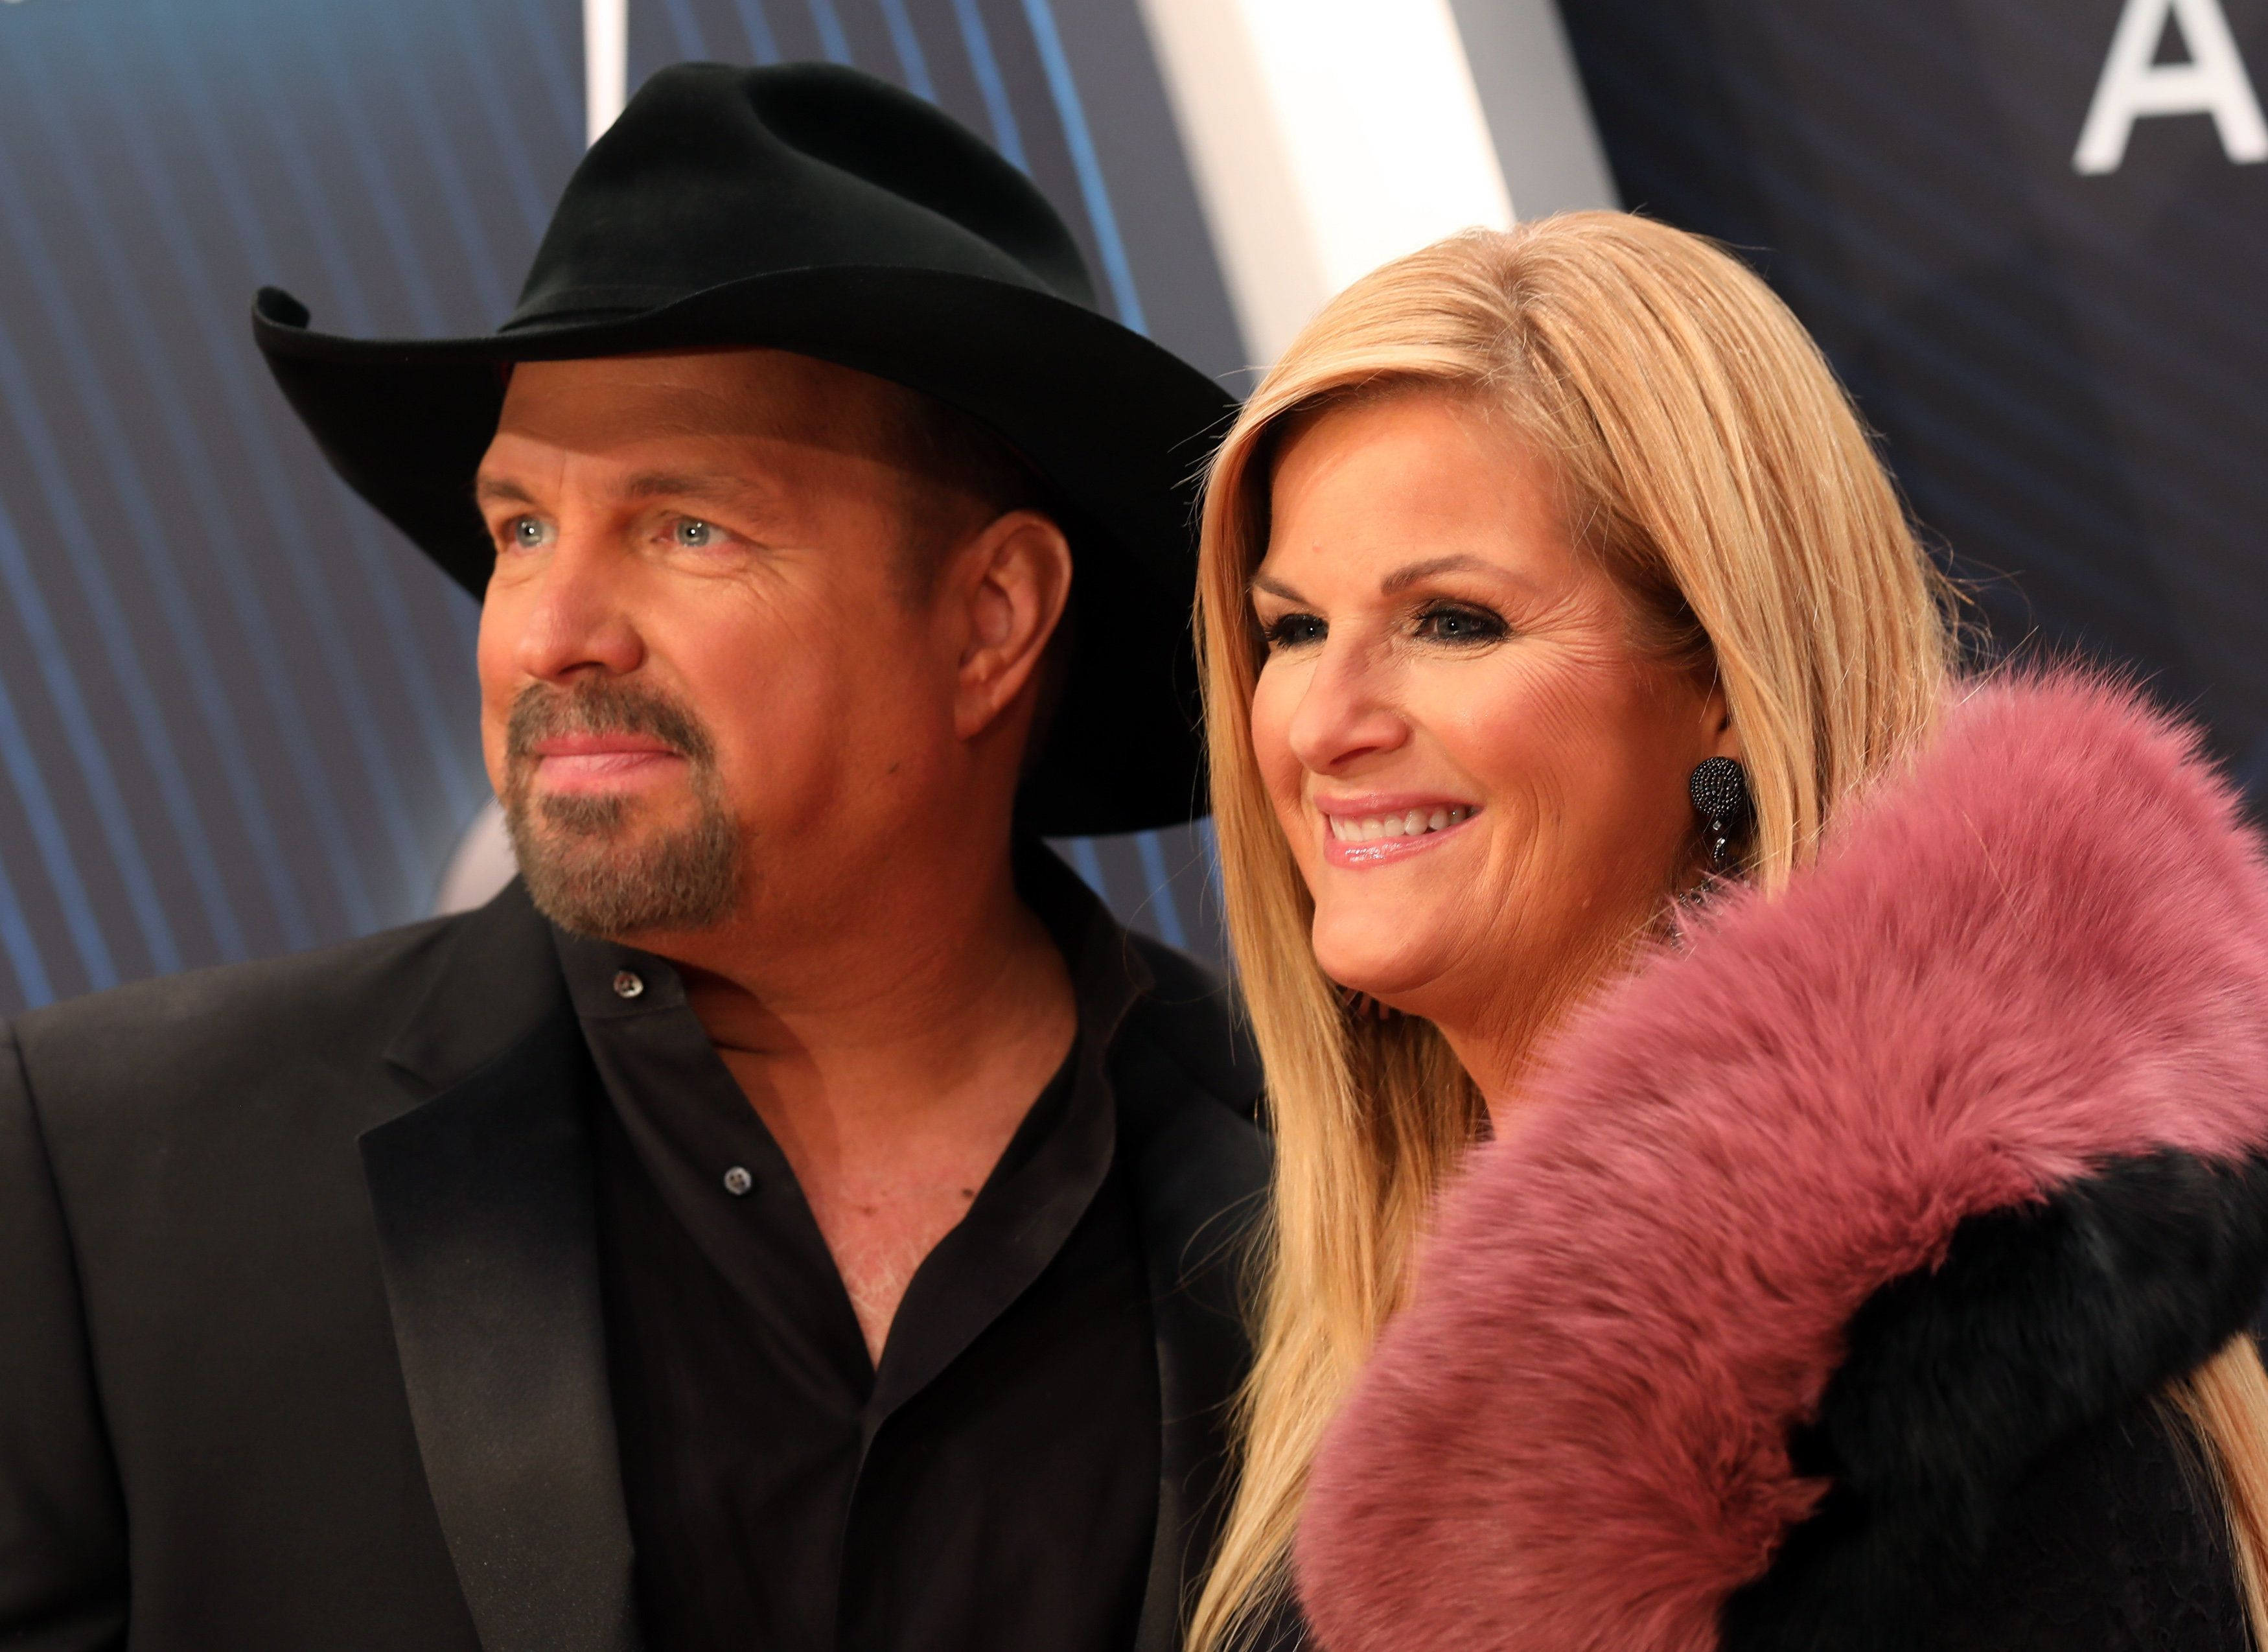 Country Music Association Awards - Arrivals - Nashville, Tennessee, U.S., 14/11/2018 - Garth Brooks and Trisha Yearwood. REUTERS/Jamie Gilliam